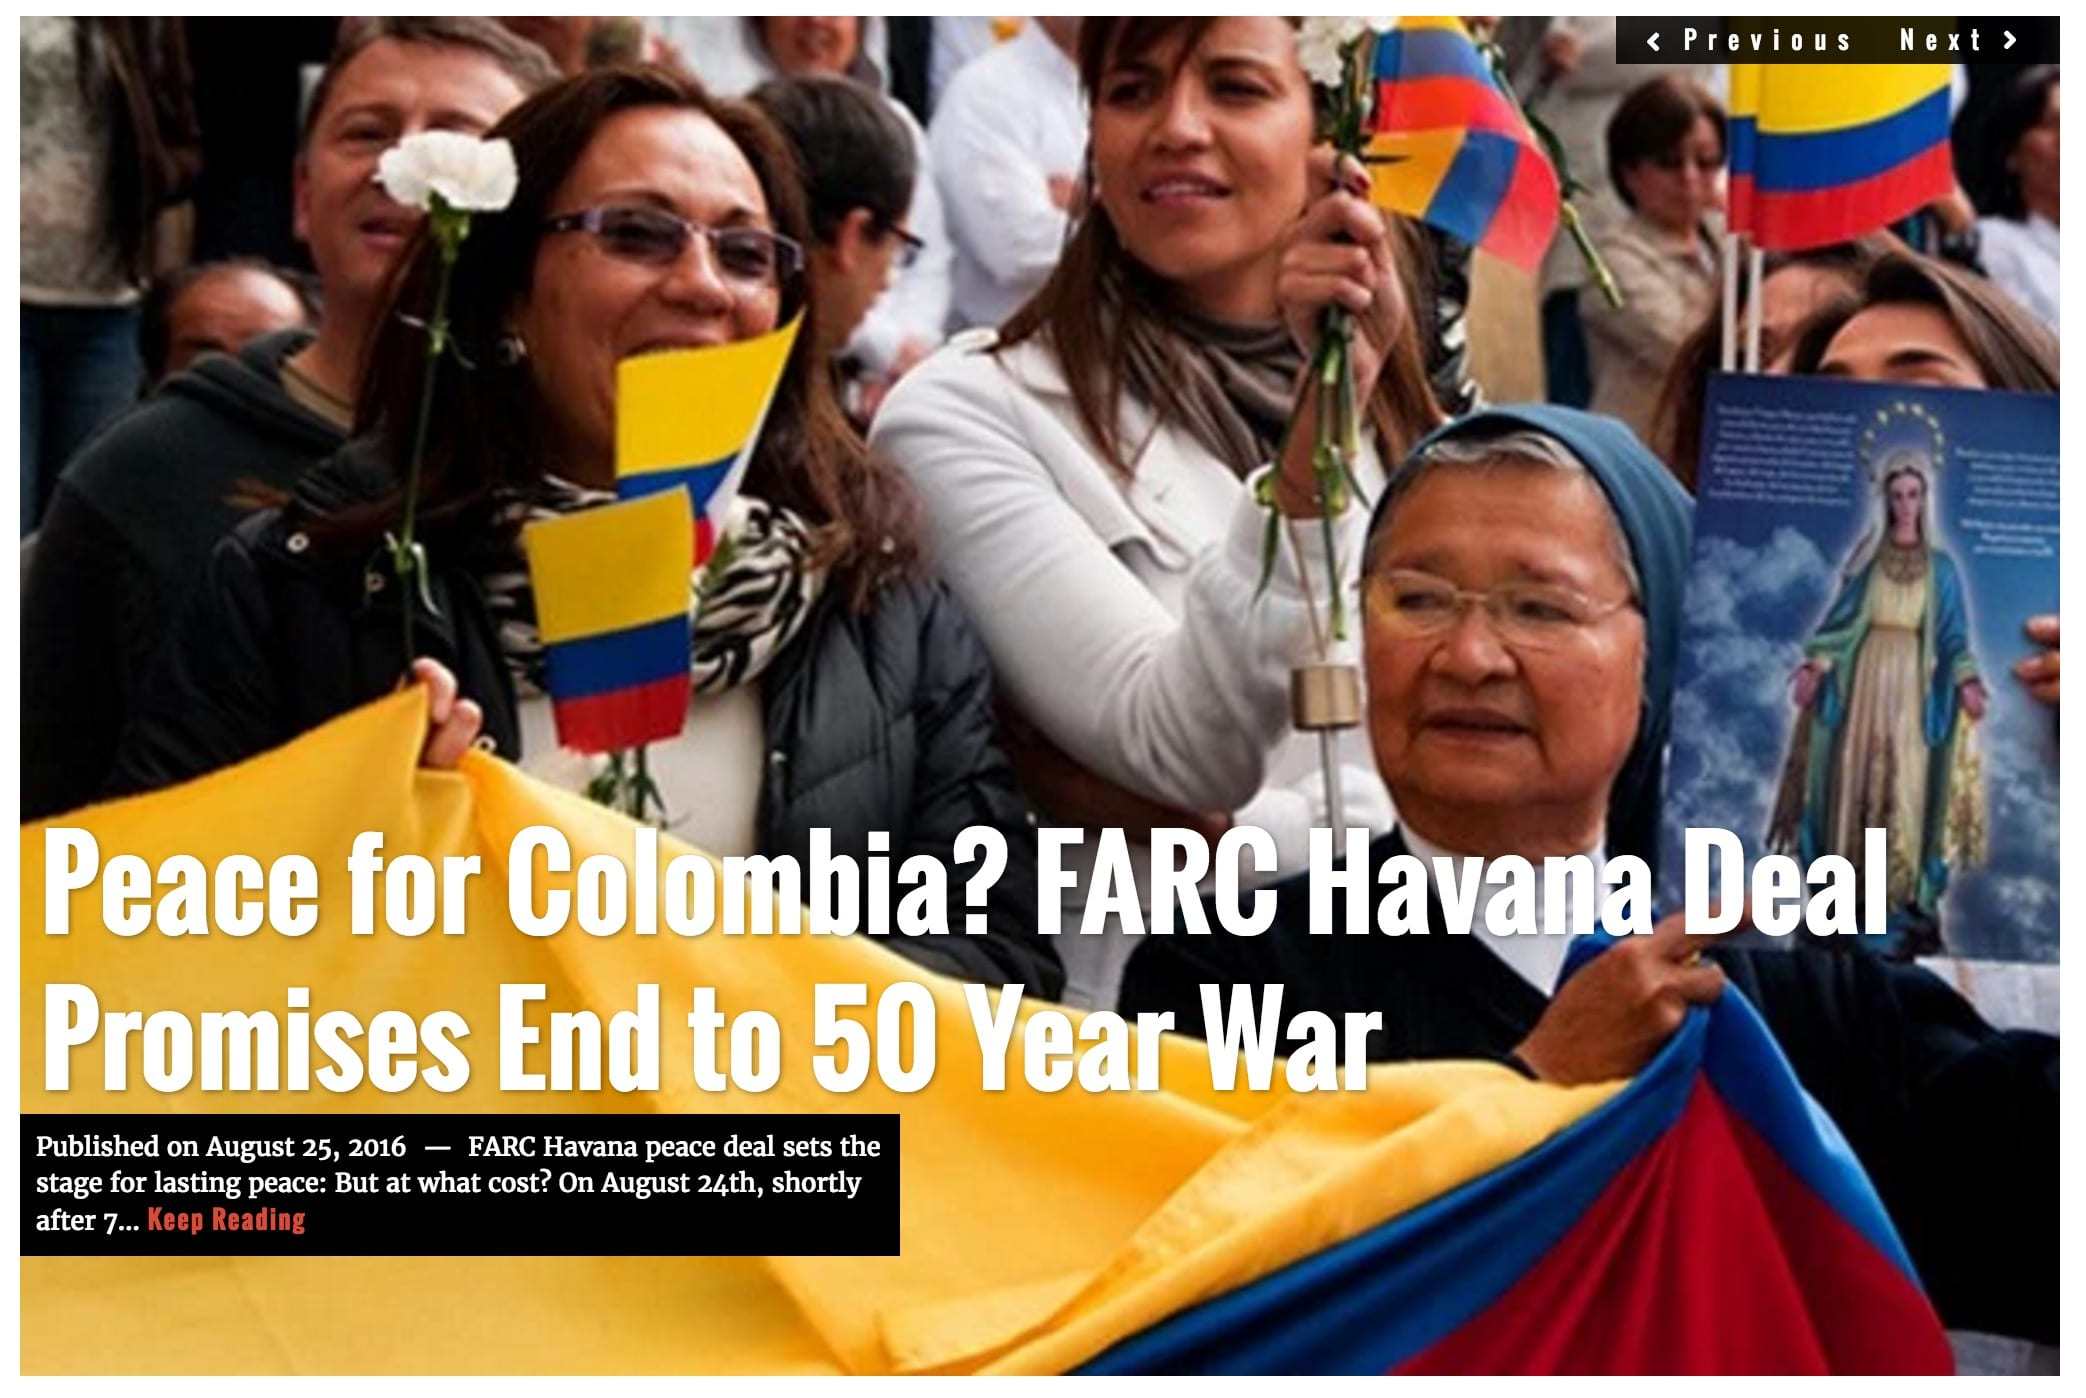 Image Lima Charlie News Headline Colombia FARC AUG25